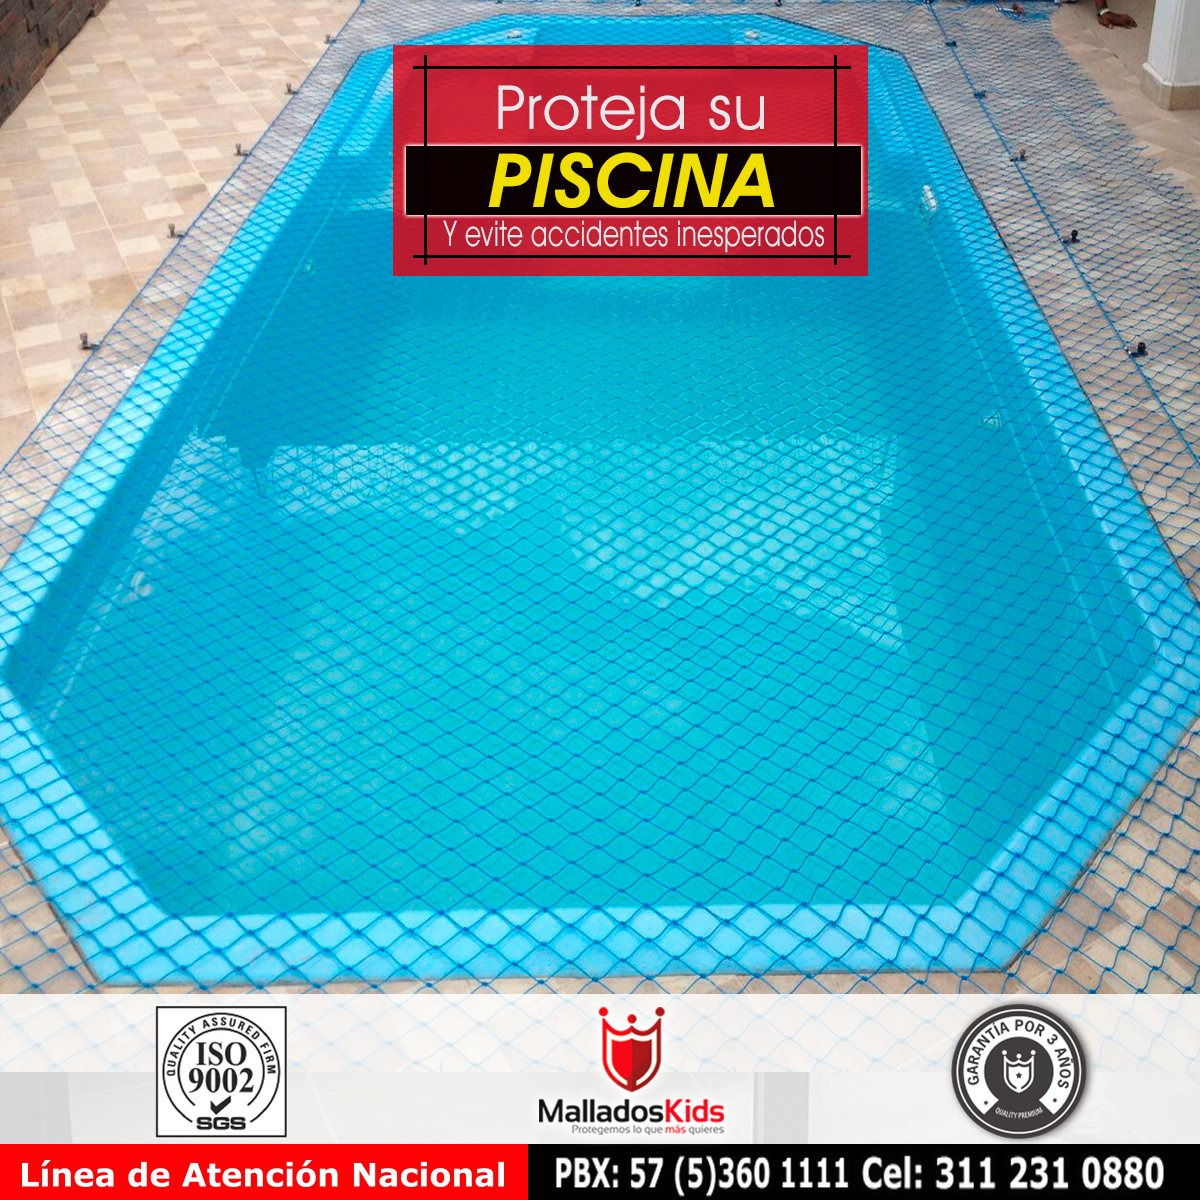 Proteccion Para Piscinas Mallados Kids On Twitter